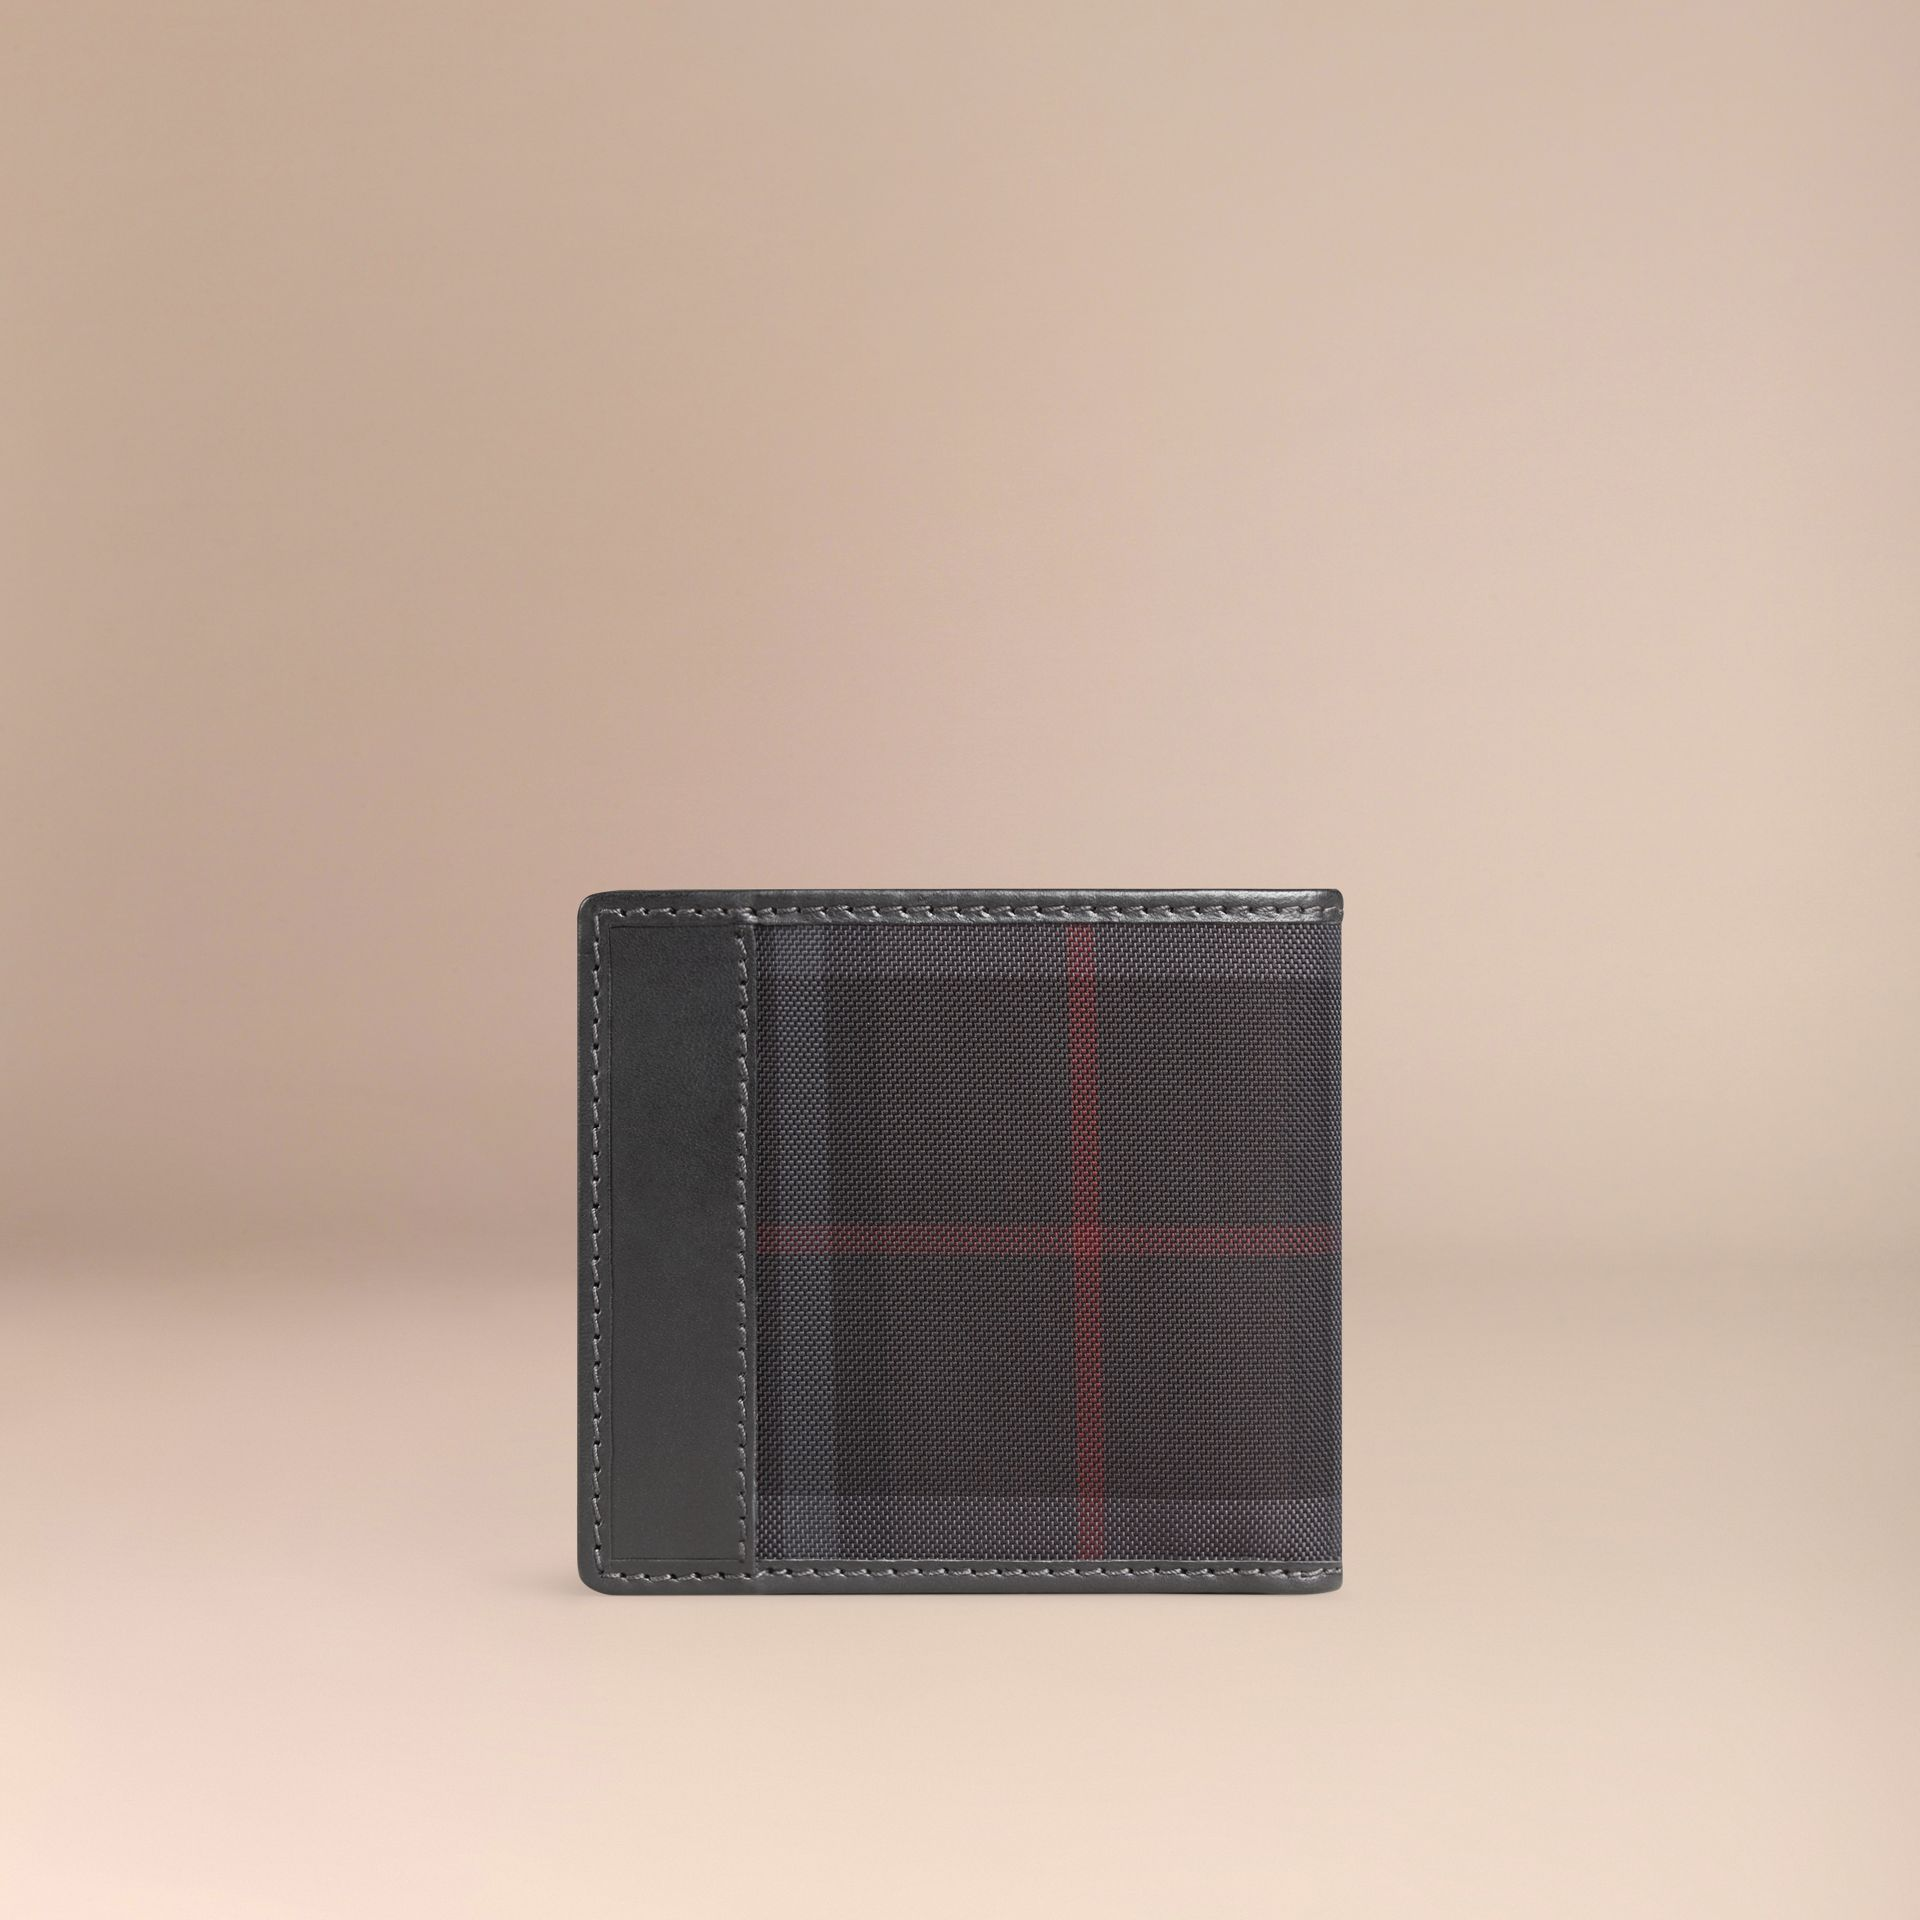 Horseferry Check International Bifold Coin Wallet in Charcoal/black - Men | Burberry - gallery image 3